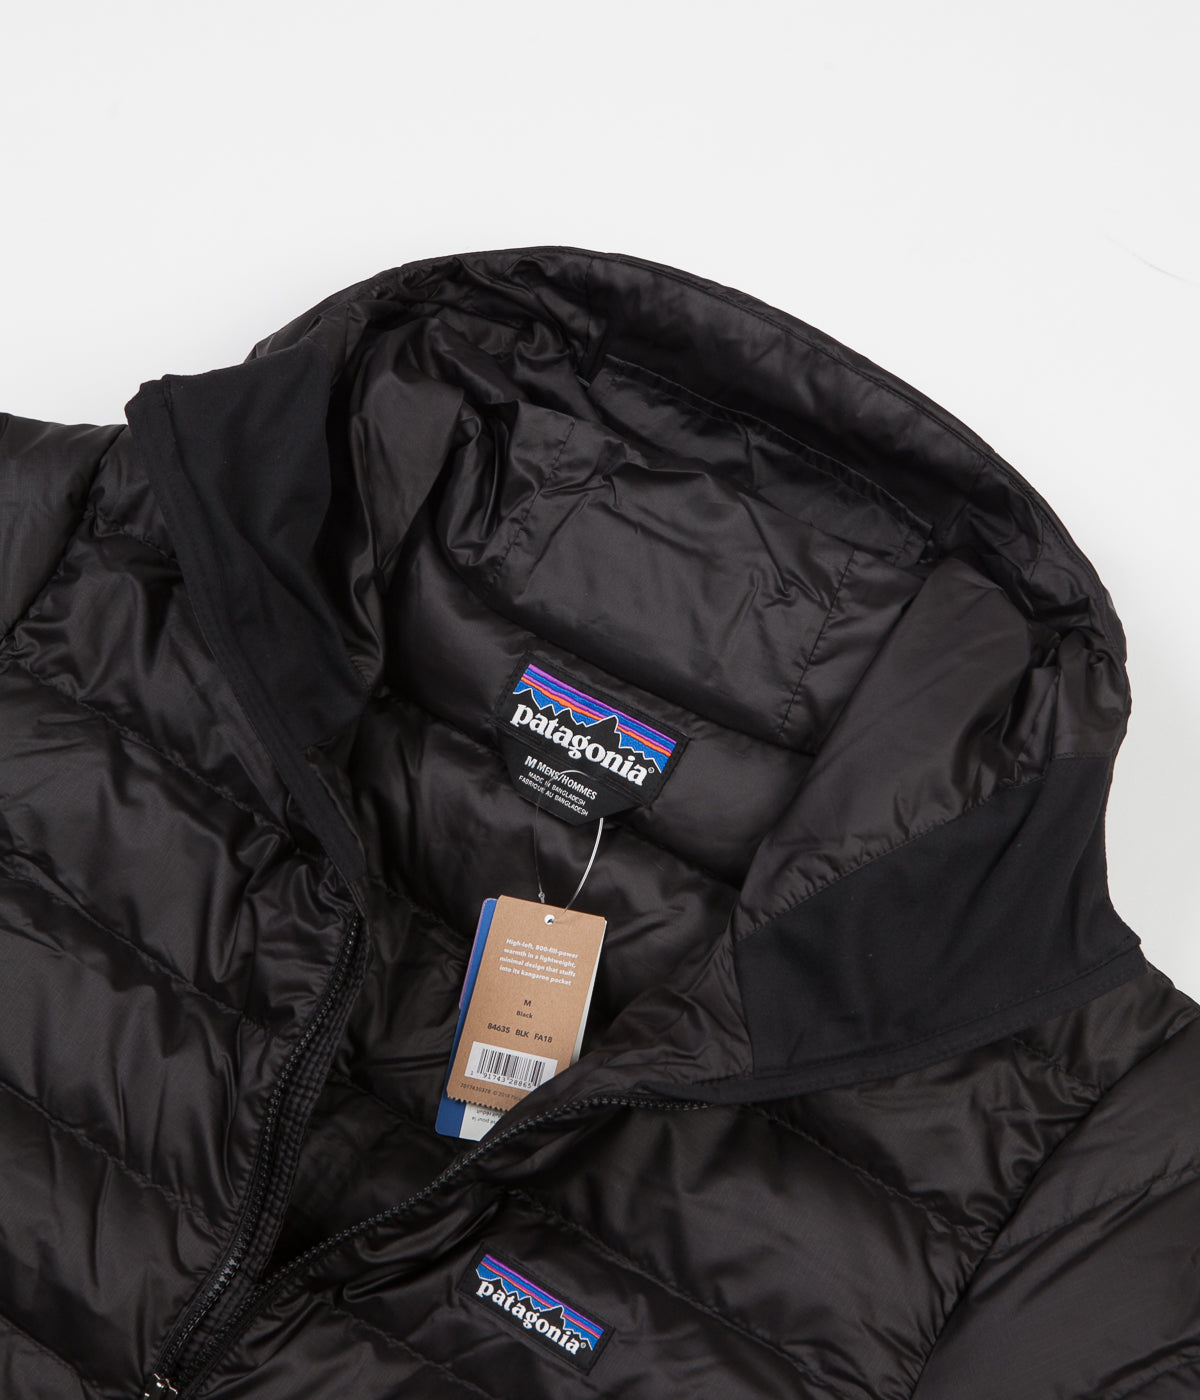 Patagonia Down Sweater Hooded Pullover Jacket - Black